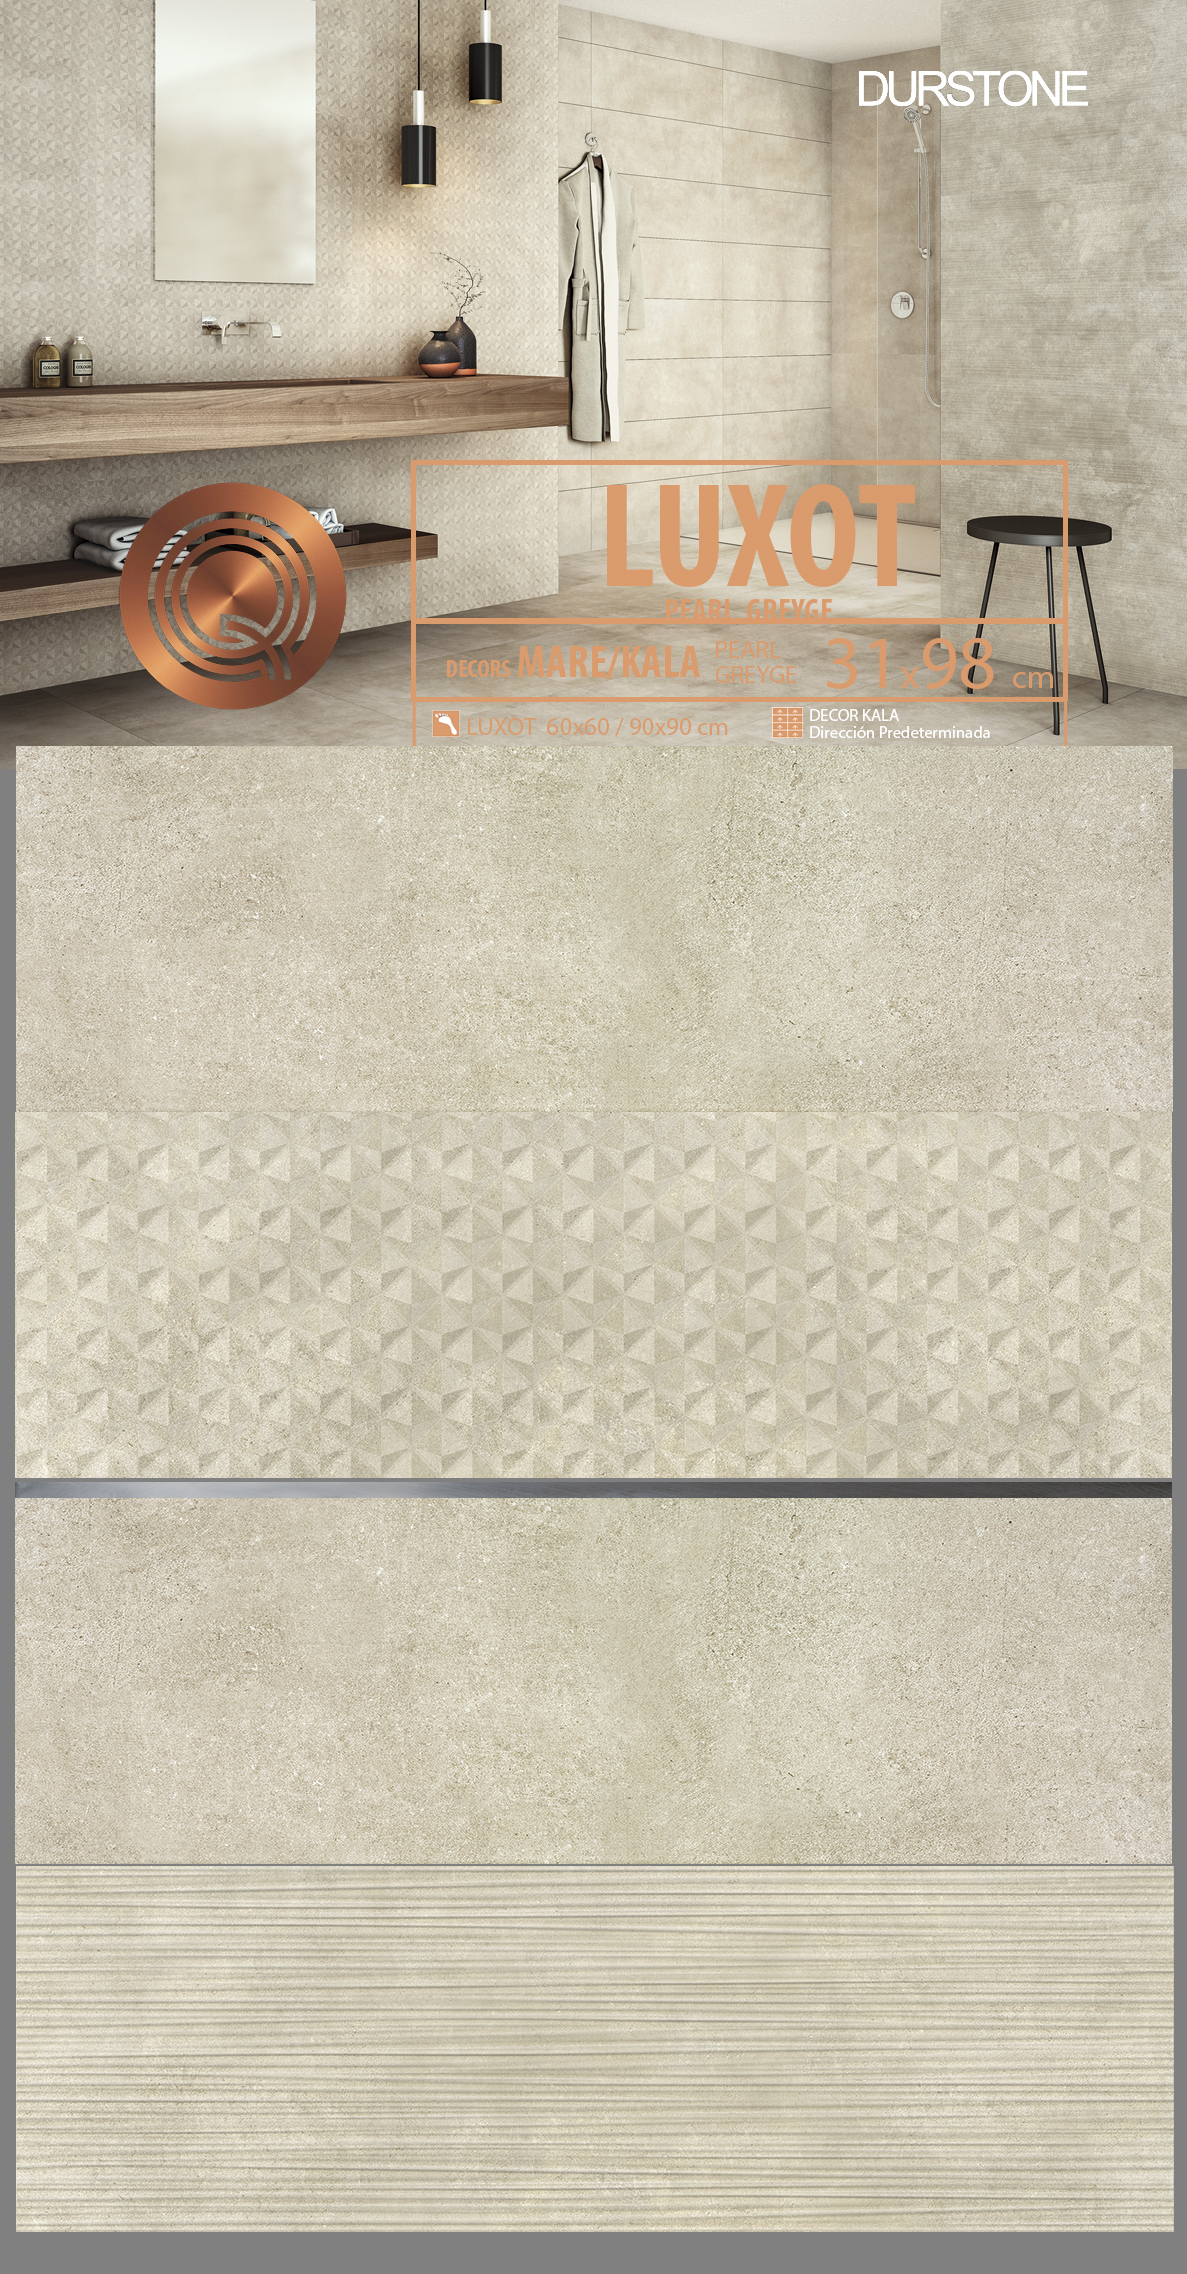 5663 RV PANEL MIX LUXOT KALA / MARE GREYGE Cod. 5663